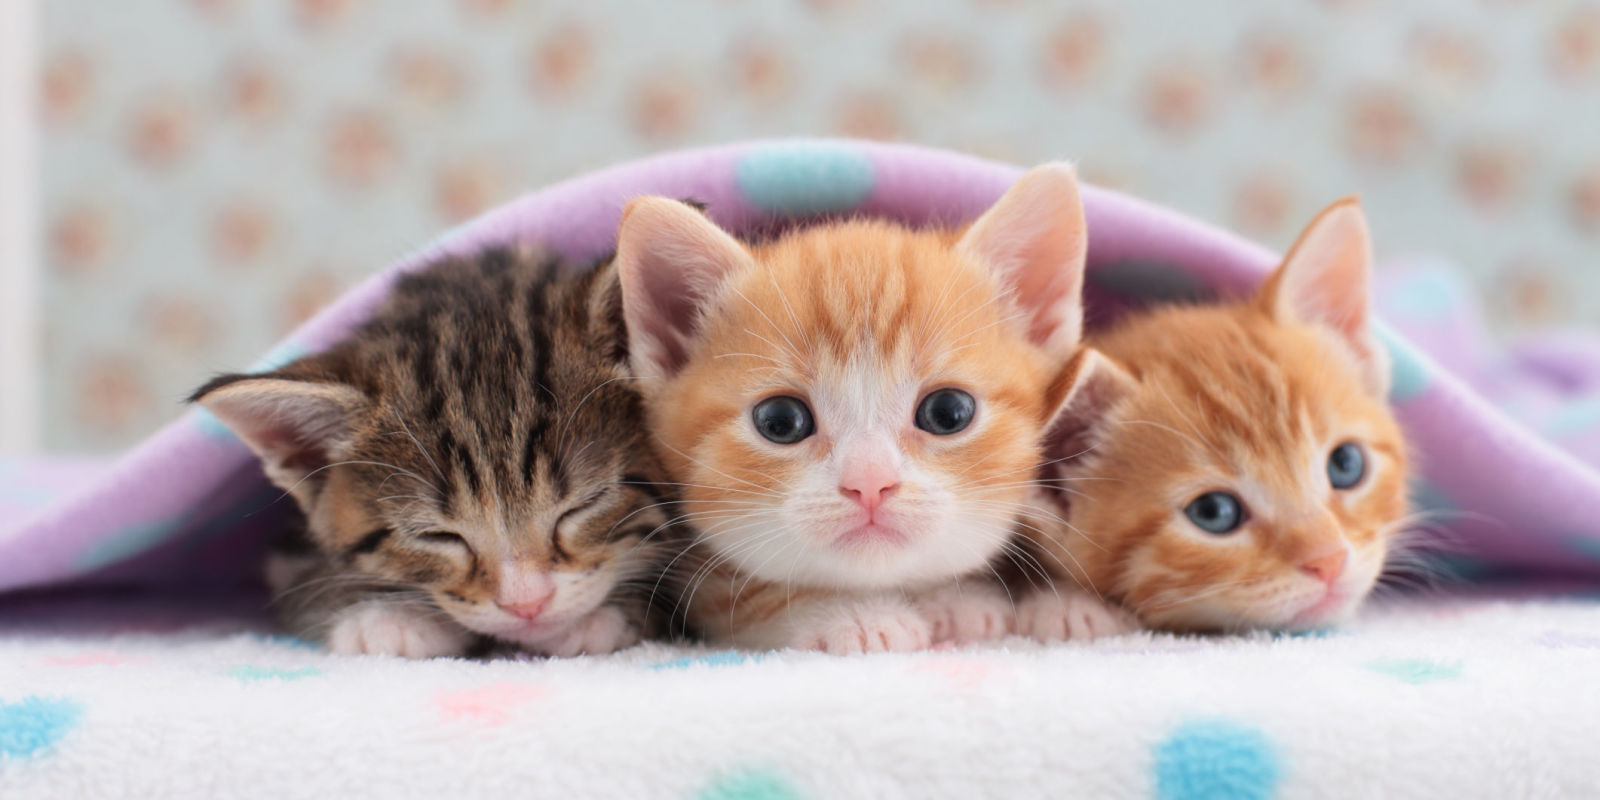 Cats That Stay Small Tiny Kittens For Your Home